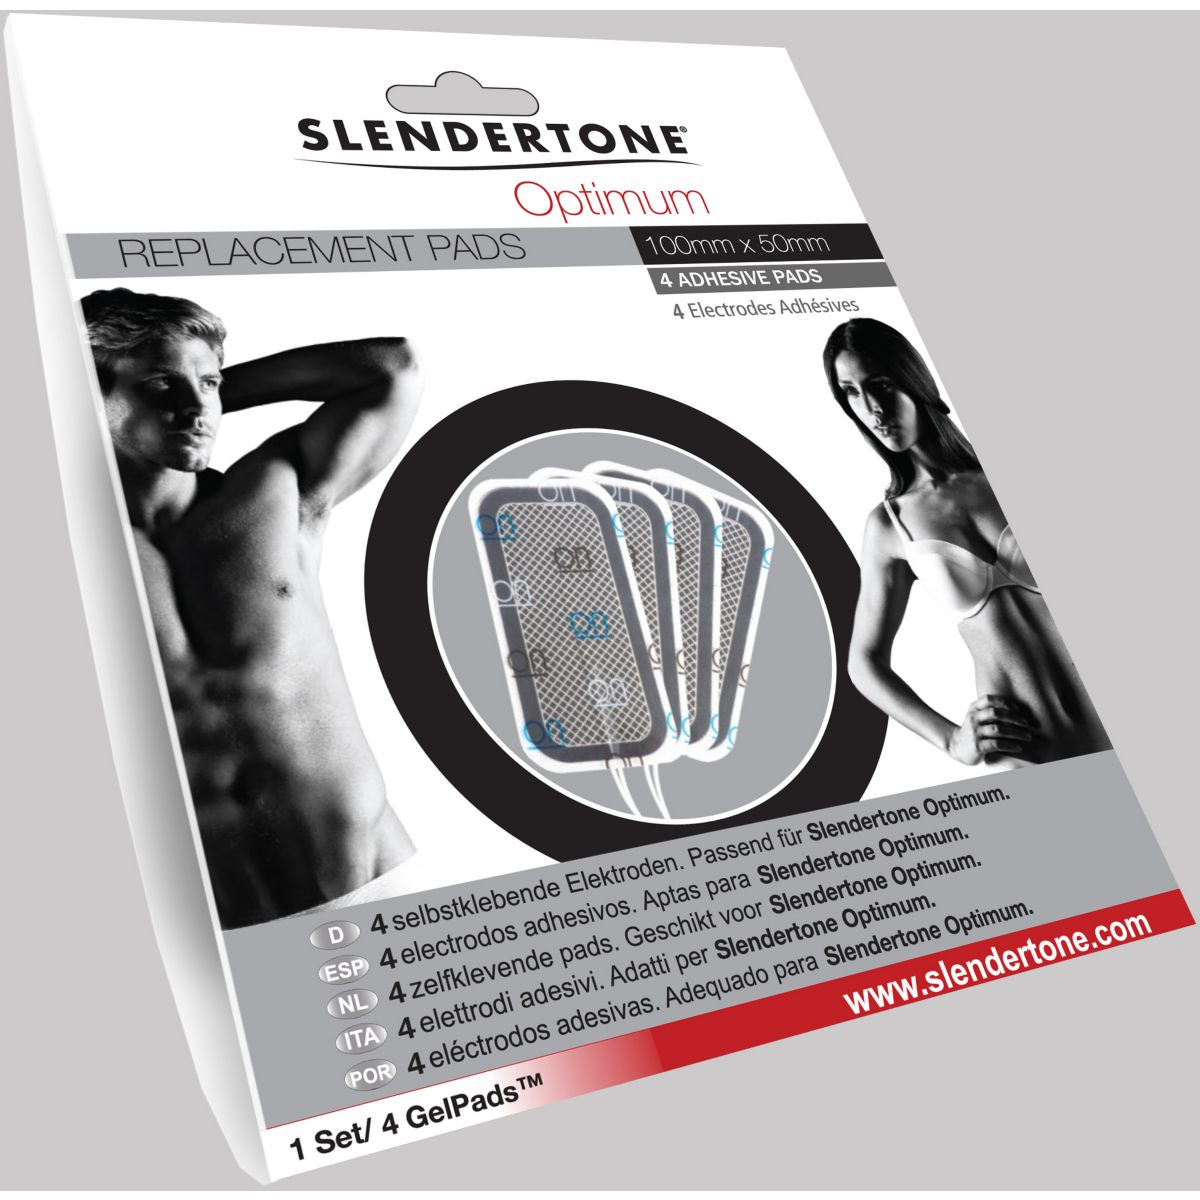 Electro-stimulation SLENDERTONE ELECTRODES OPTIMUM 50X100 (photo)